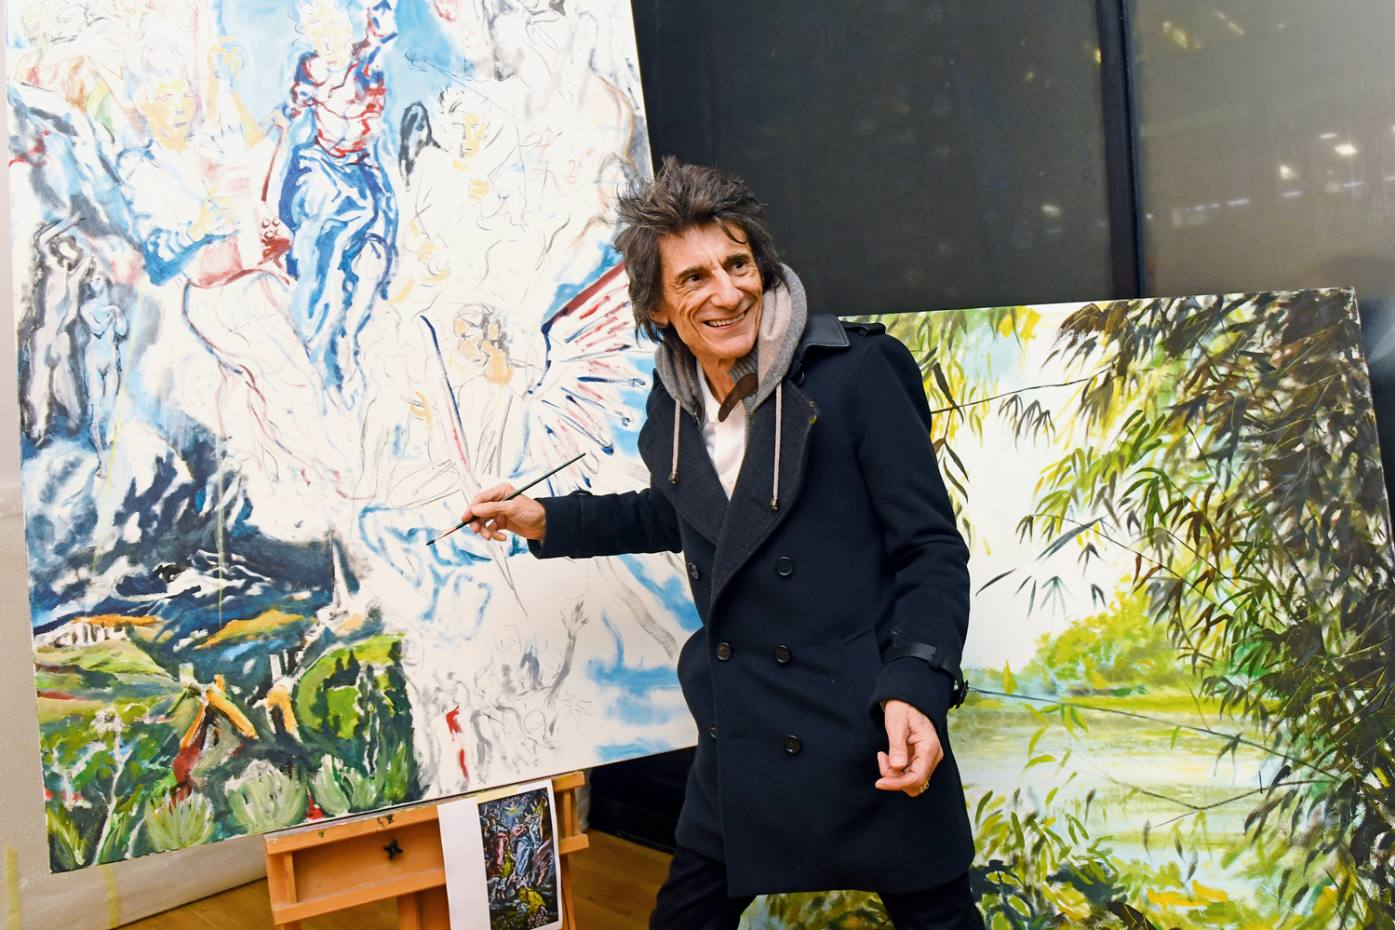 Wood painting ataprivate viewing of the Ronnie Wood Collection exhibition in December 2019